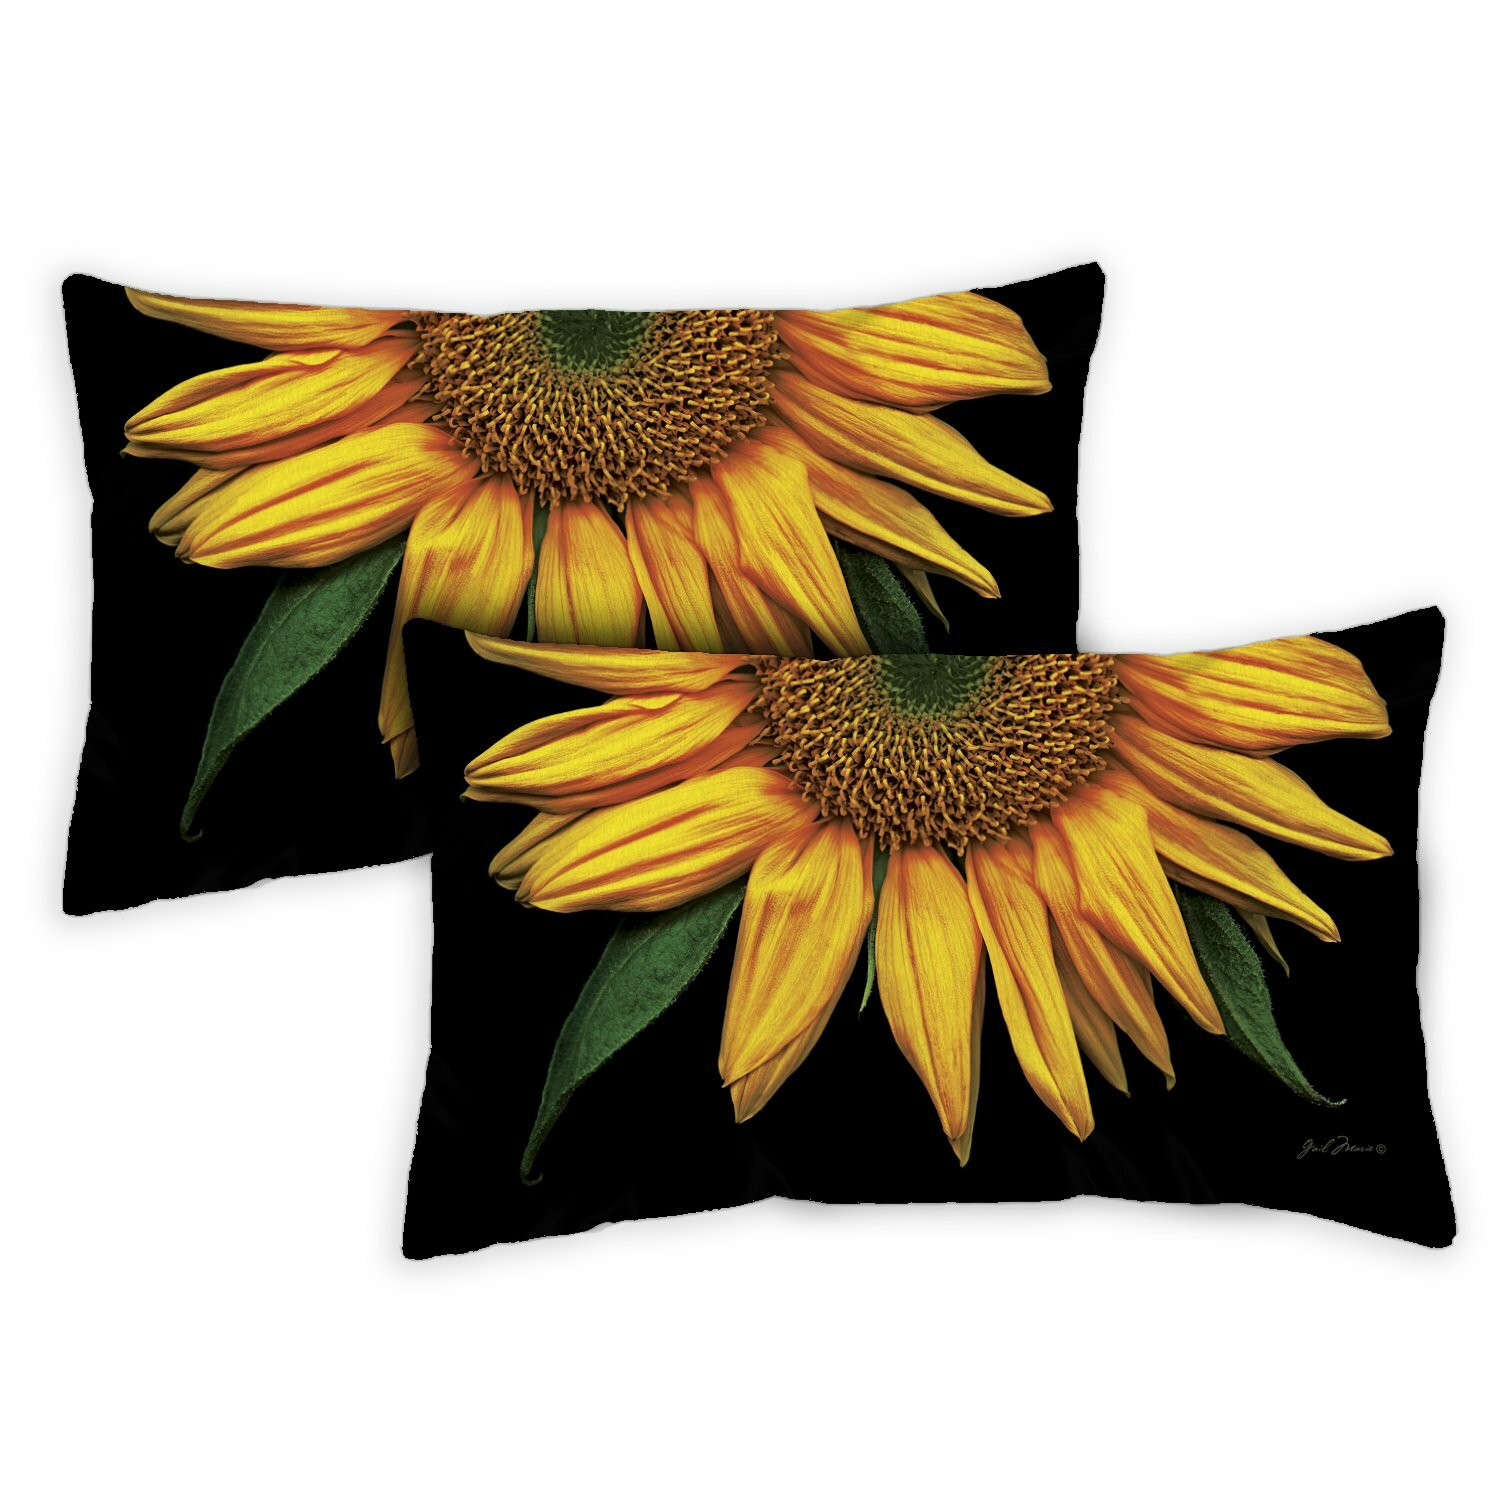 Toland Home Garden Sunflowers Lumbar Pillow Wayfair